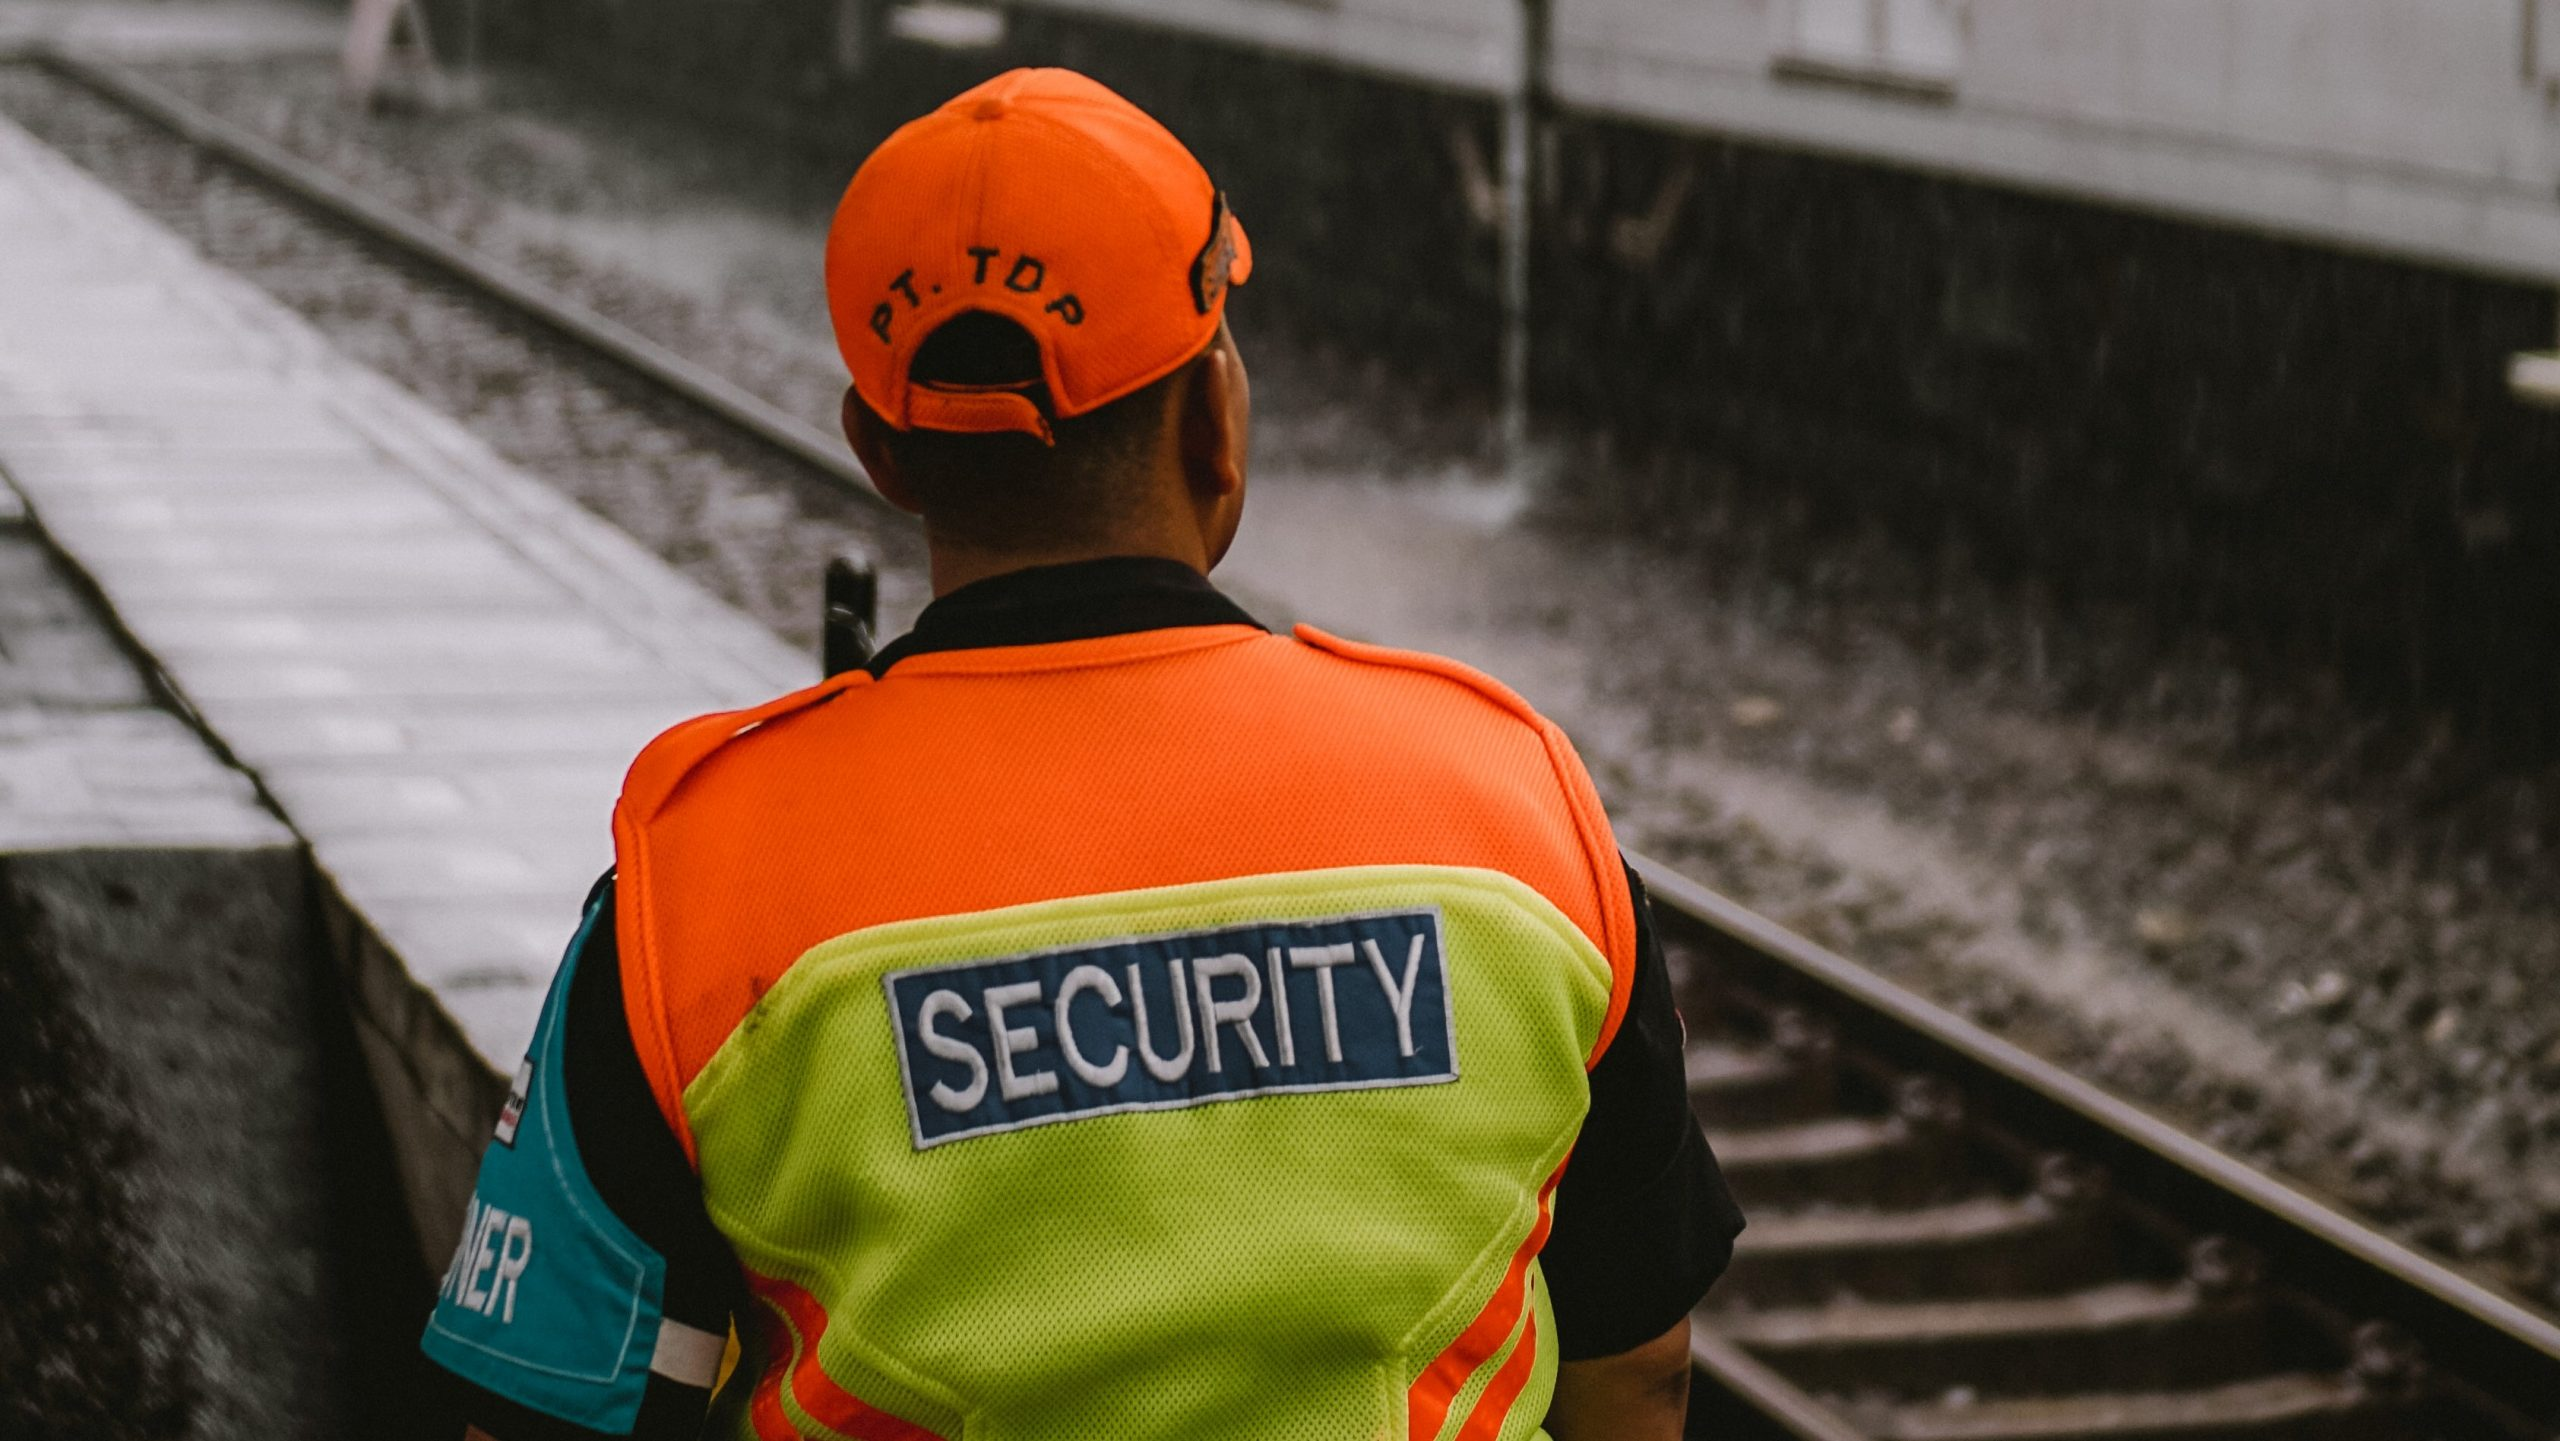 birmingham-security-guards-watching-over-your-security-safety